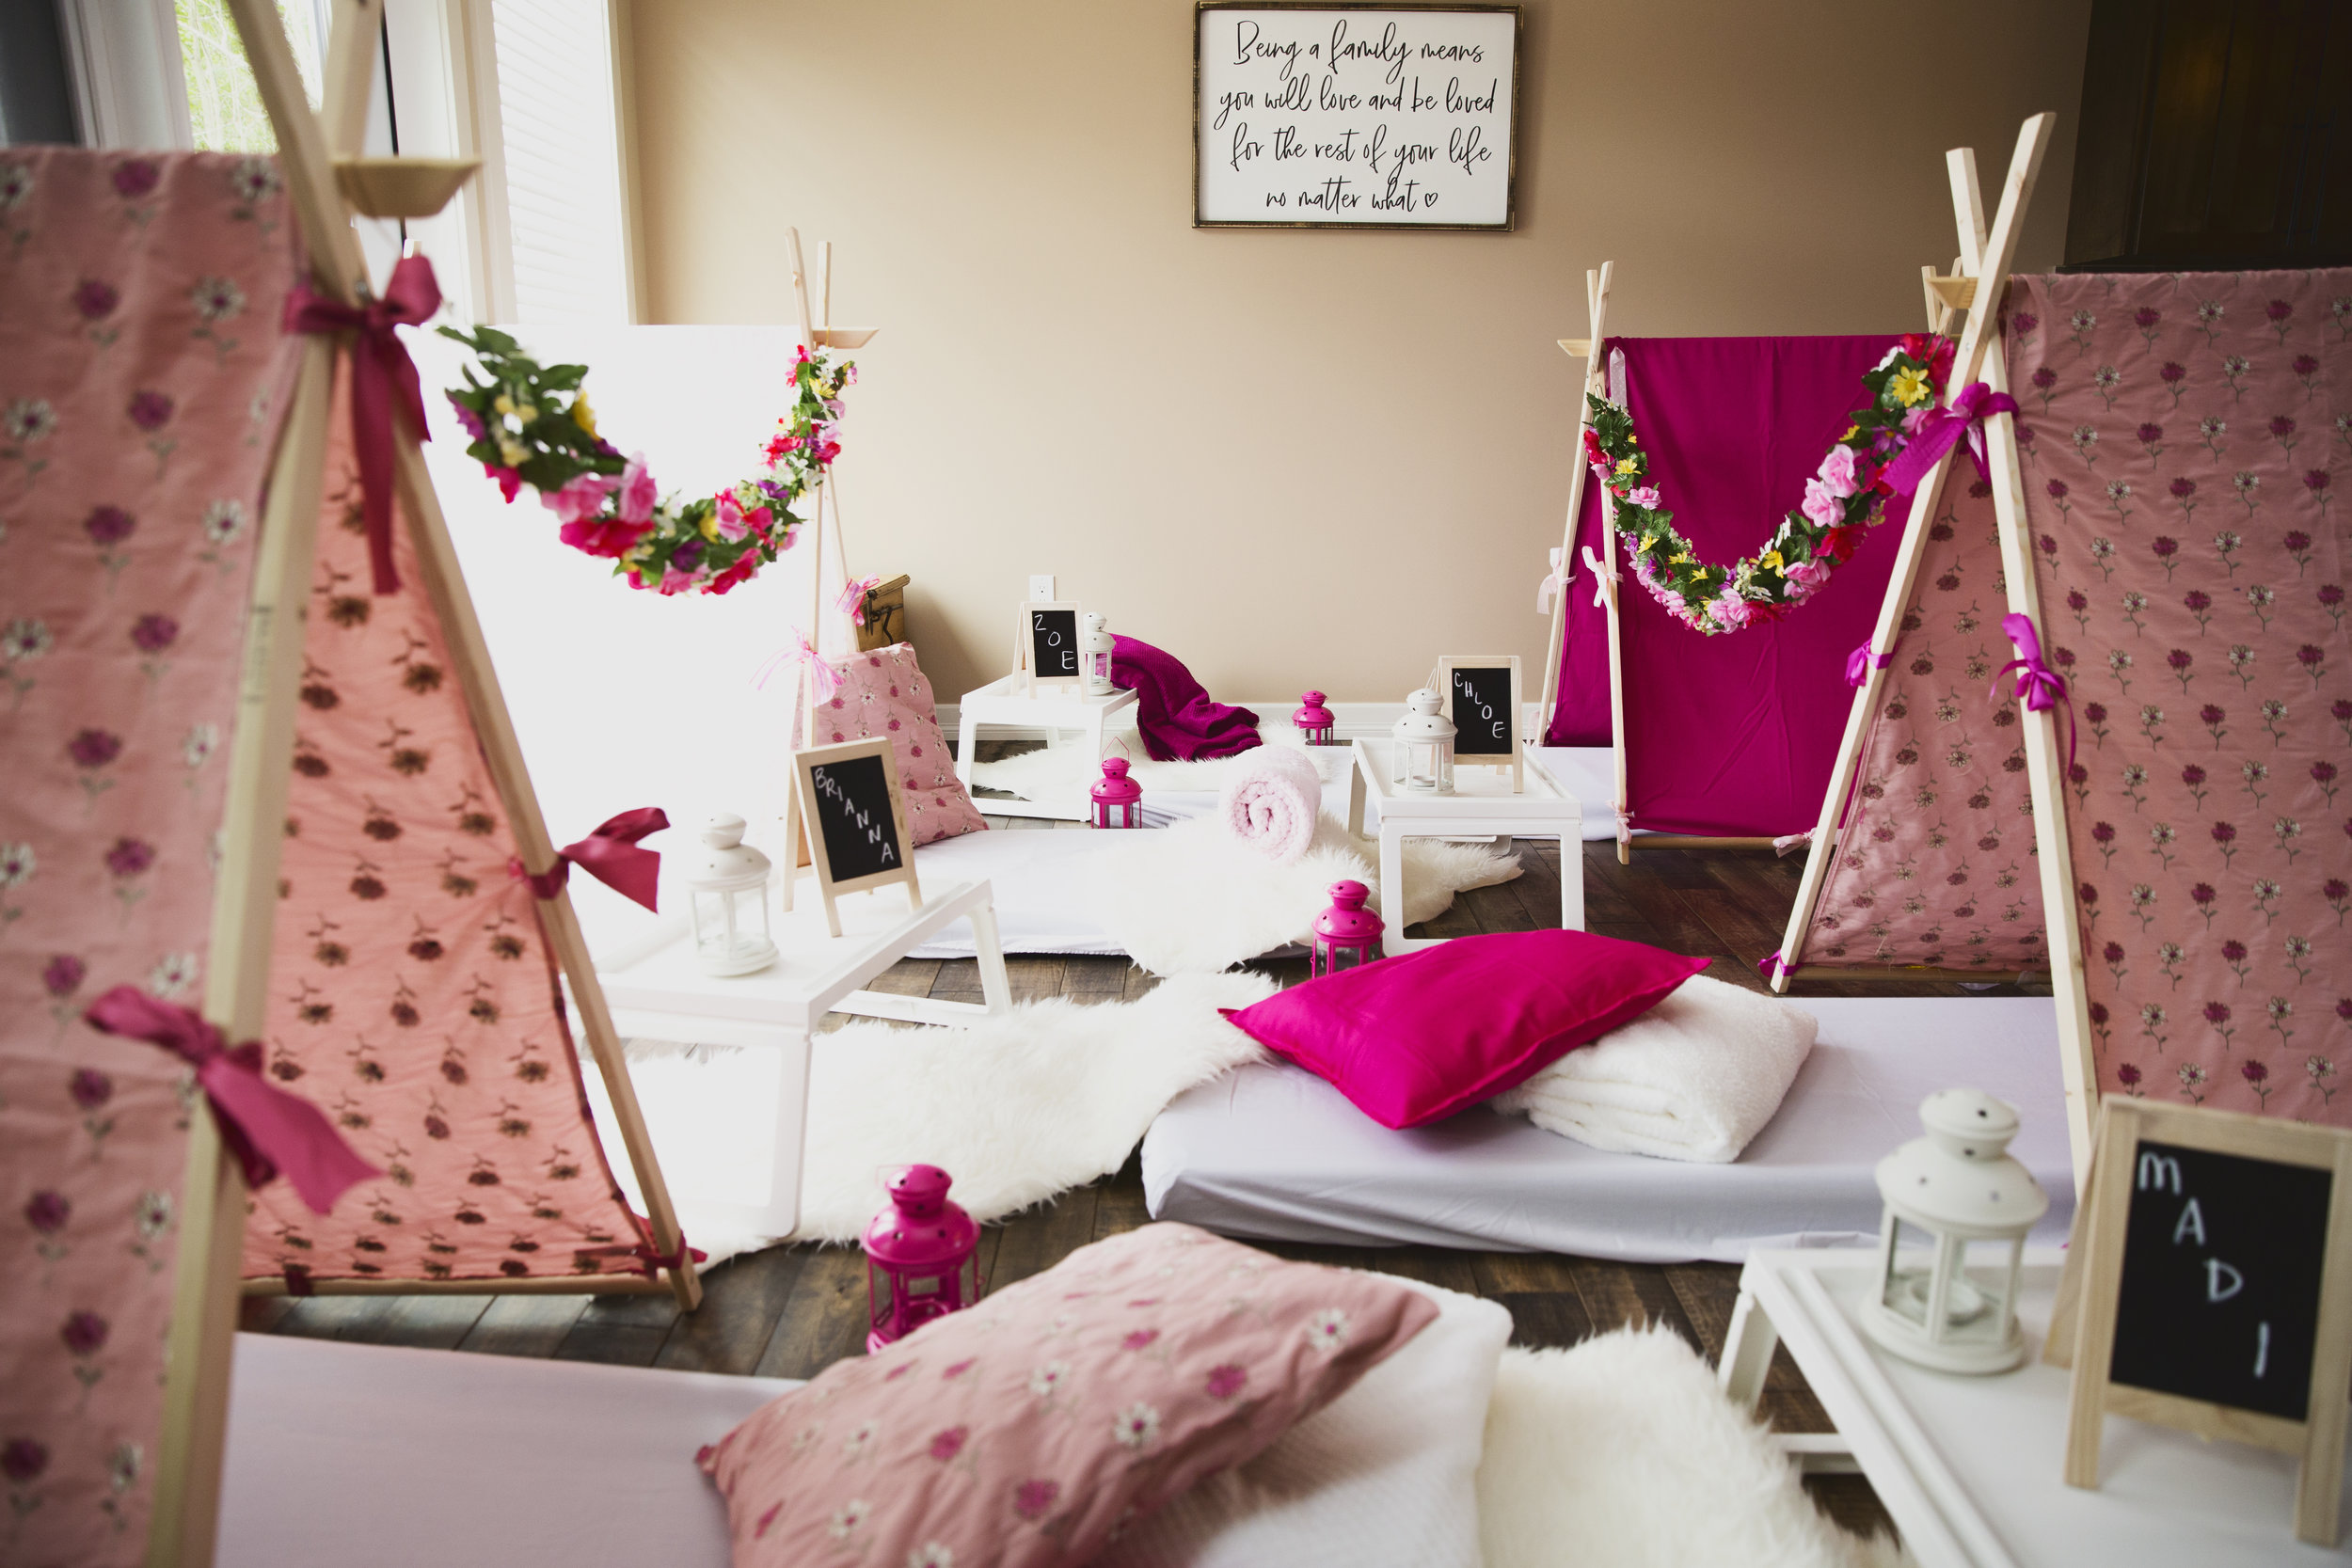 The Enchanted Rose Garden - This style is full of blooming, enchanted roses. We drape flower garlands between the teepees, bringing a modern fairy-tale look to your party. Soft pinks with floral print are intermixed with solid dark pink teepees with garlands to tie this lovely theme together.